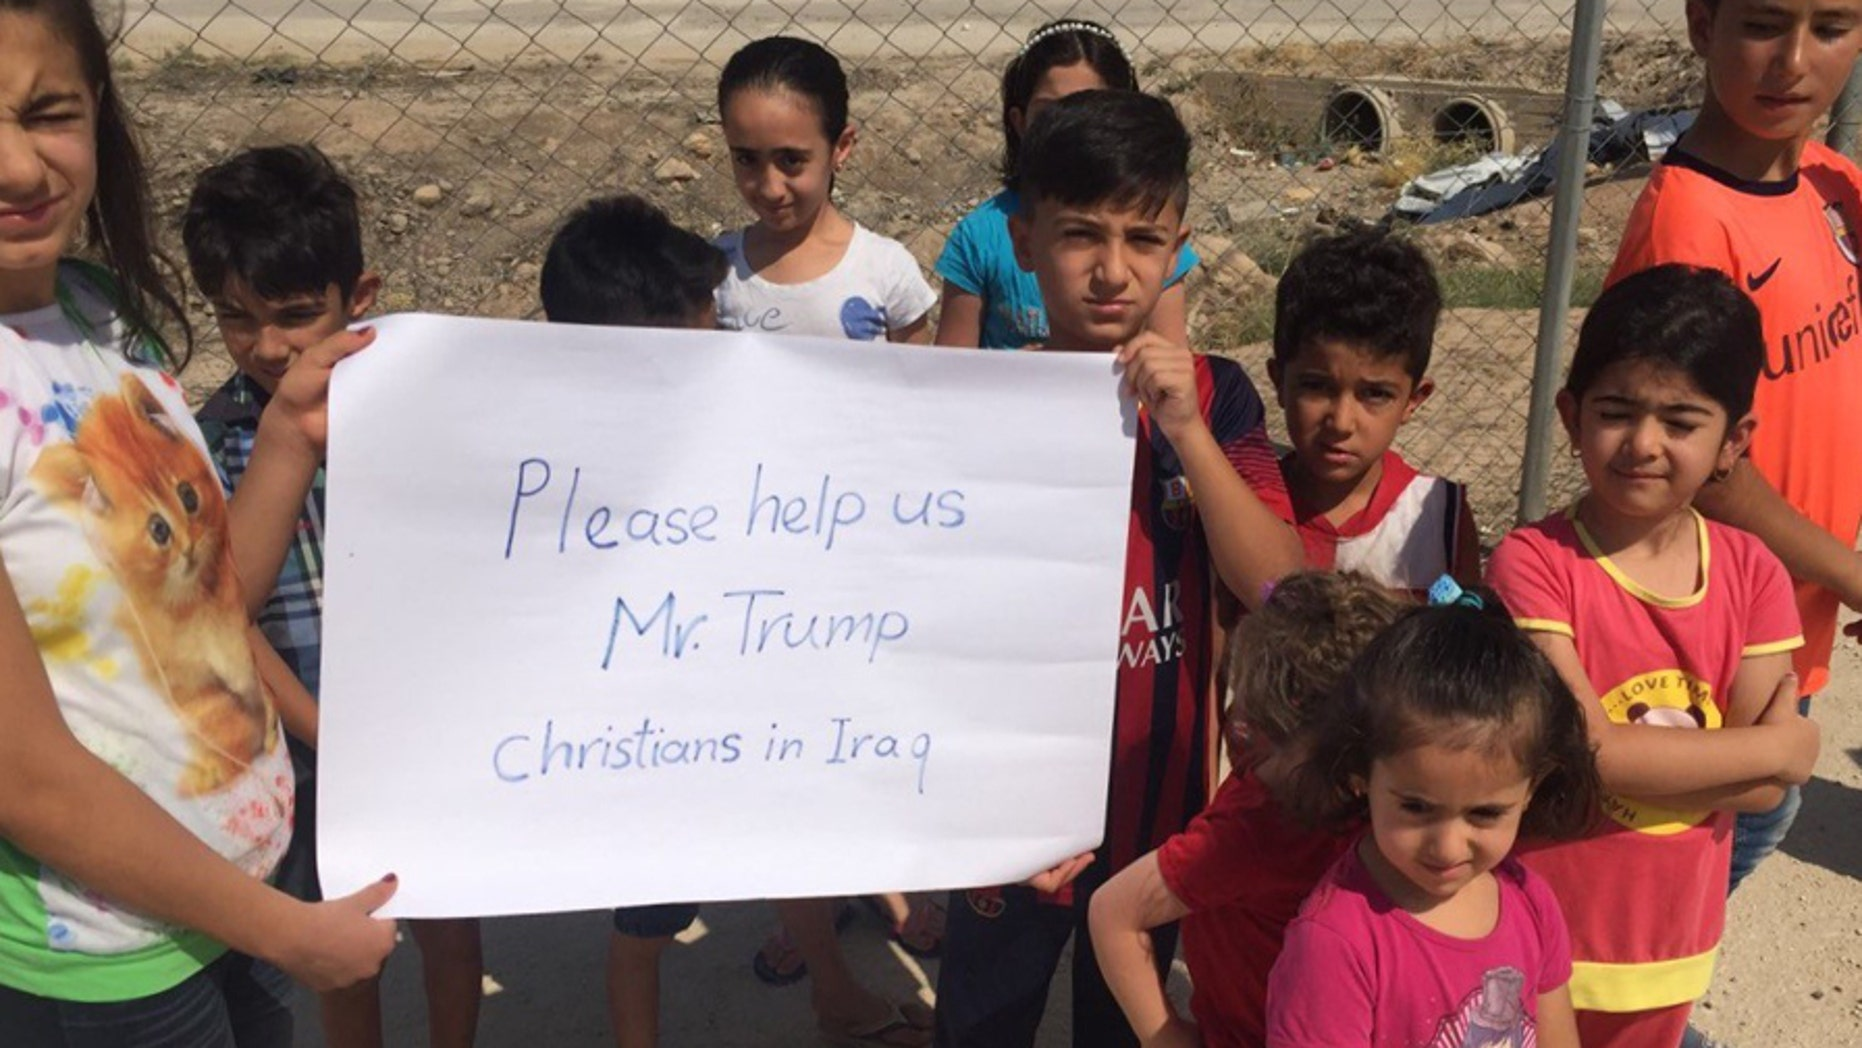 Images provided to Fox News show Christian Iraqi children pleading for help from the US, which experts say underscores the plight faced by the country's religious minorities.